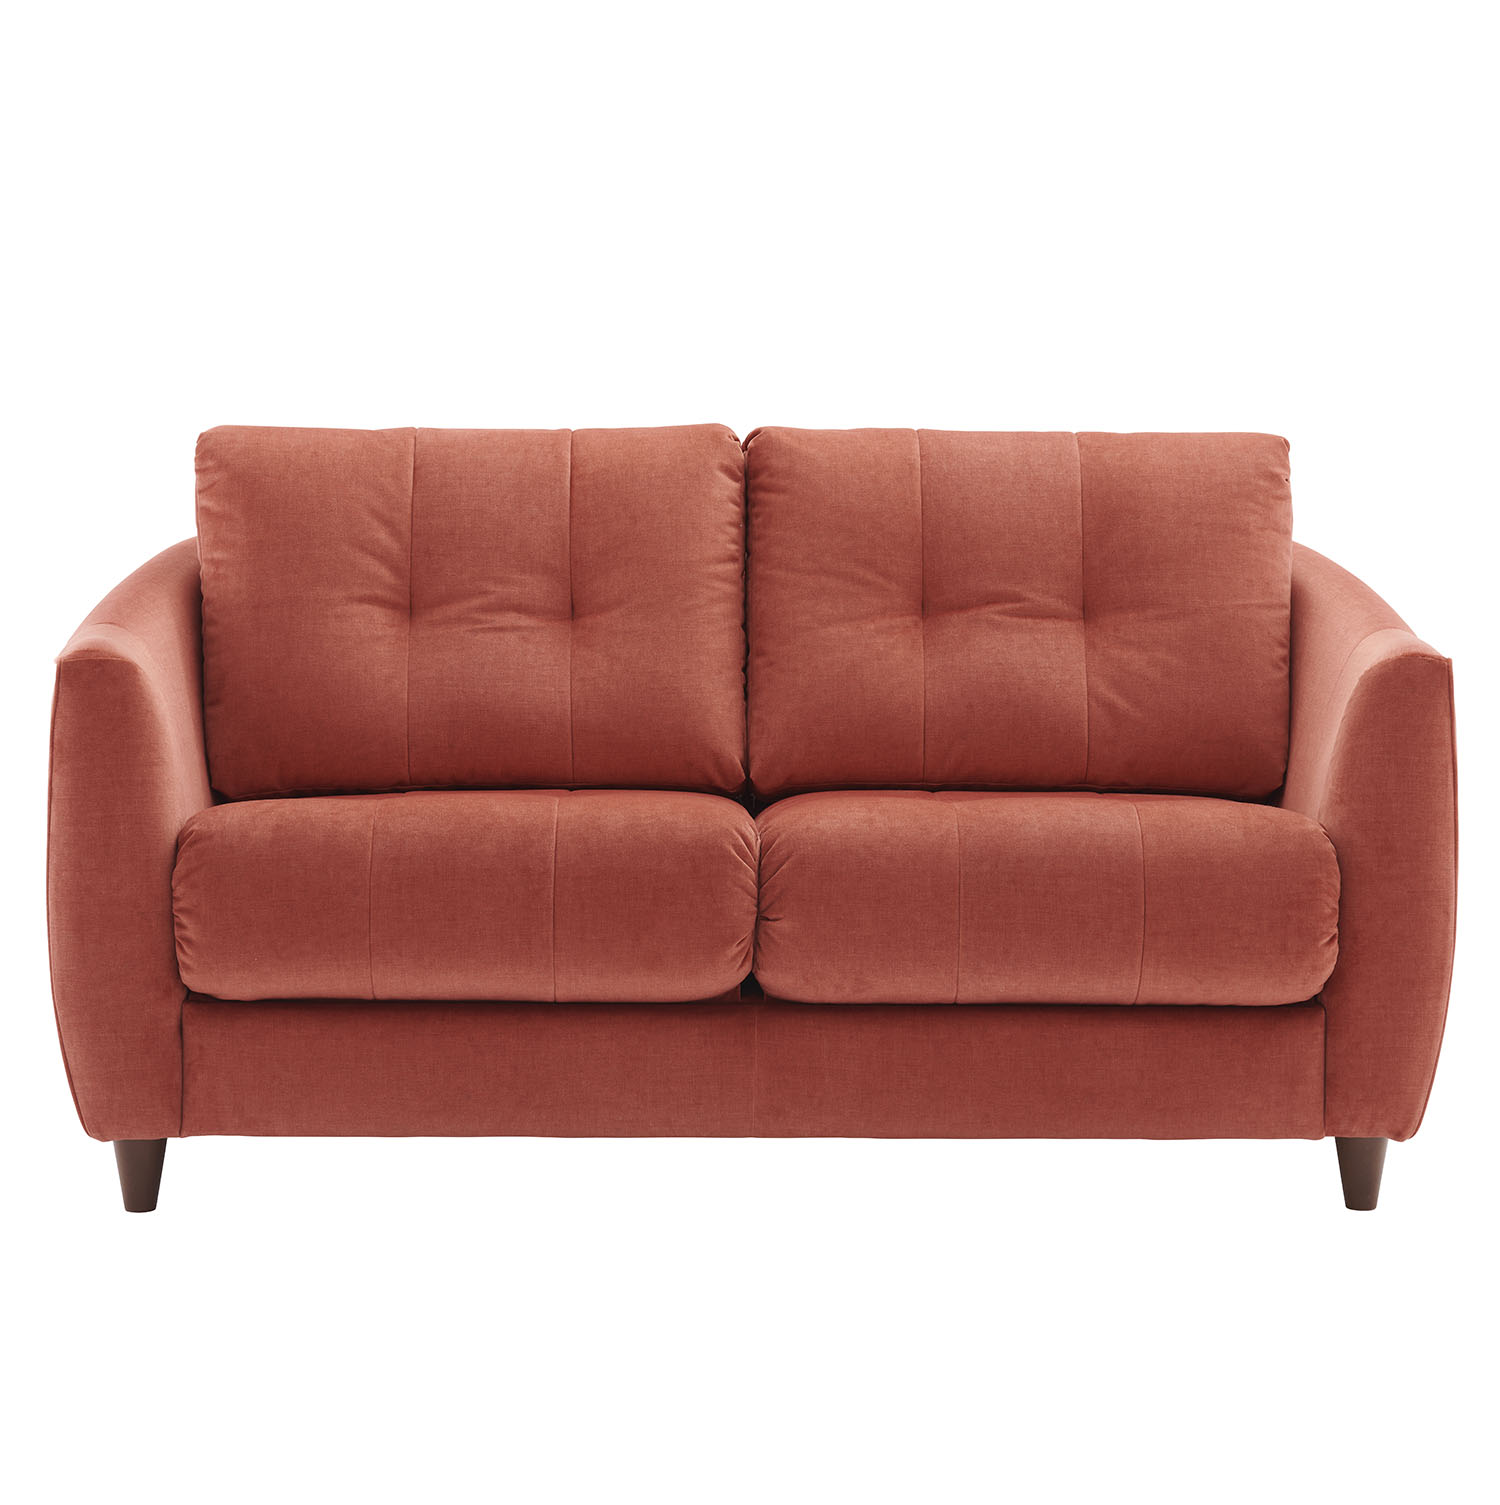 G Plan Nancy Small Sofa Double